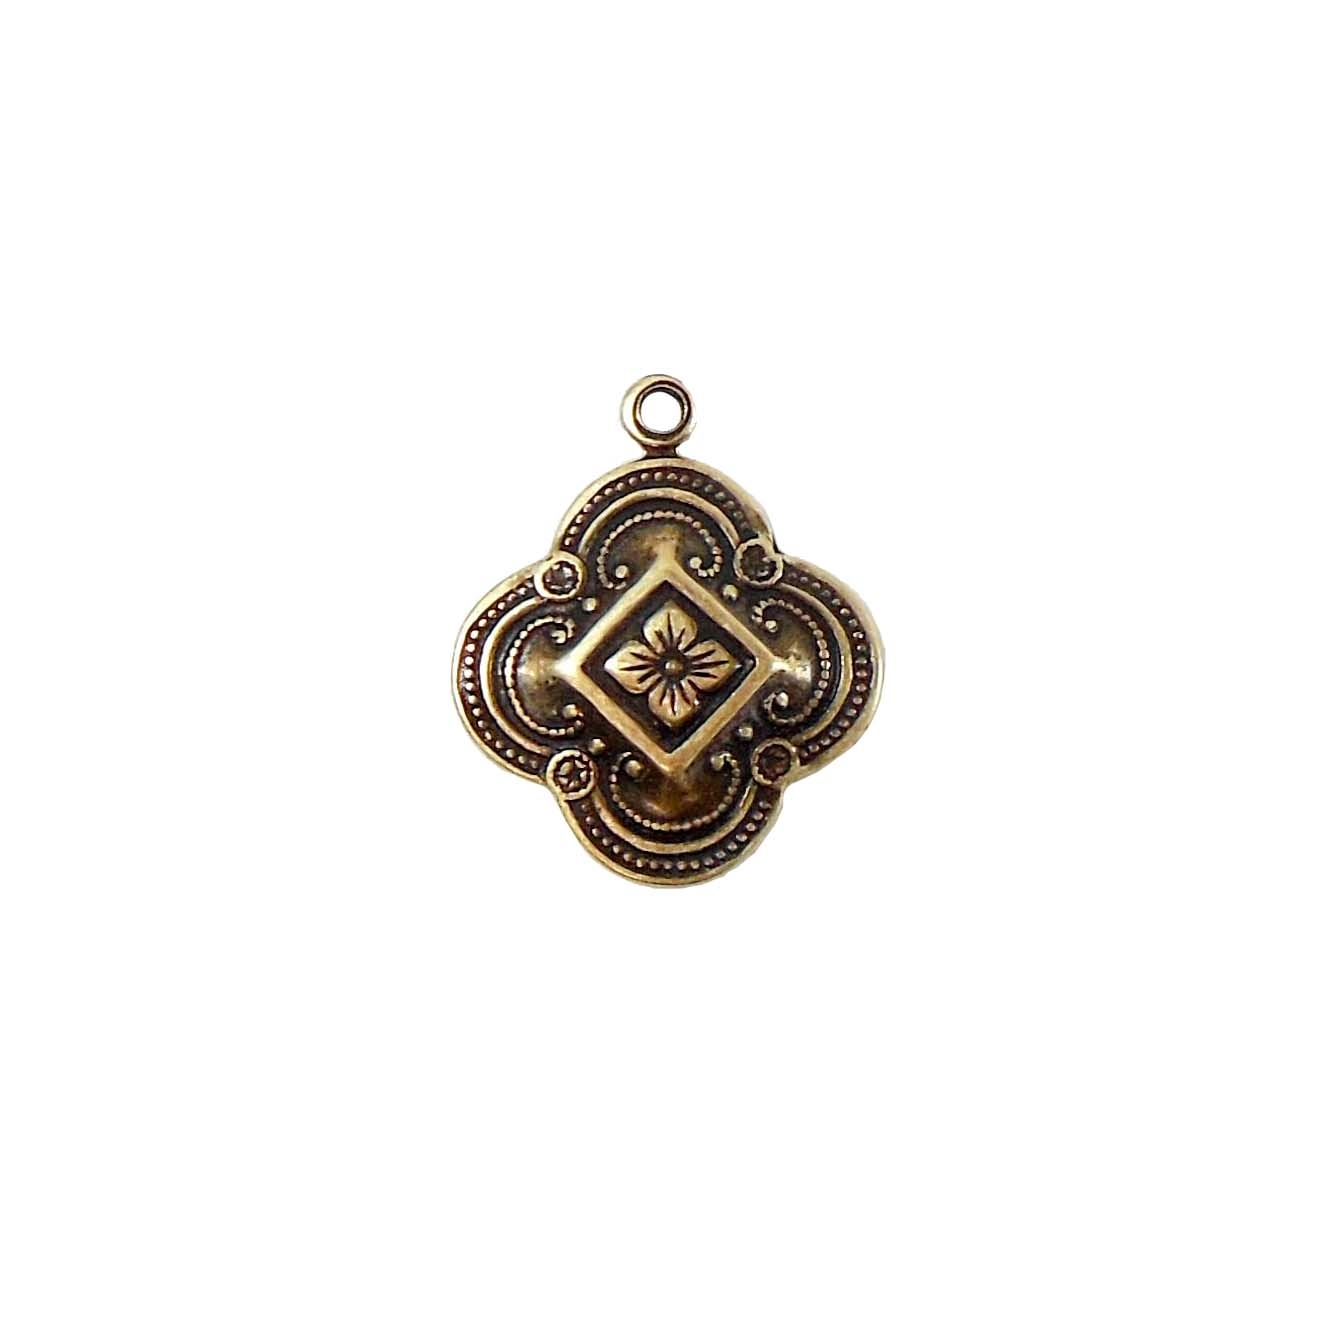 Brass Charm, Victorian Design, Drop, Brass Ox, Ear Drops, Charm, Floral Design, Vintage Style Drops, Antique Brass, Jewelry Findings, Nickel Free, Brass Stamping, Charm Accents, Made in USA, 15mm, Vintage, Victorian, Style, B'sue Boutiques, Pendent, 05103